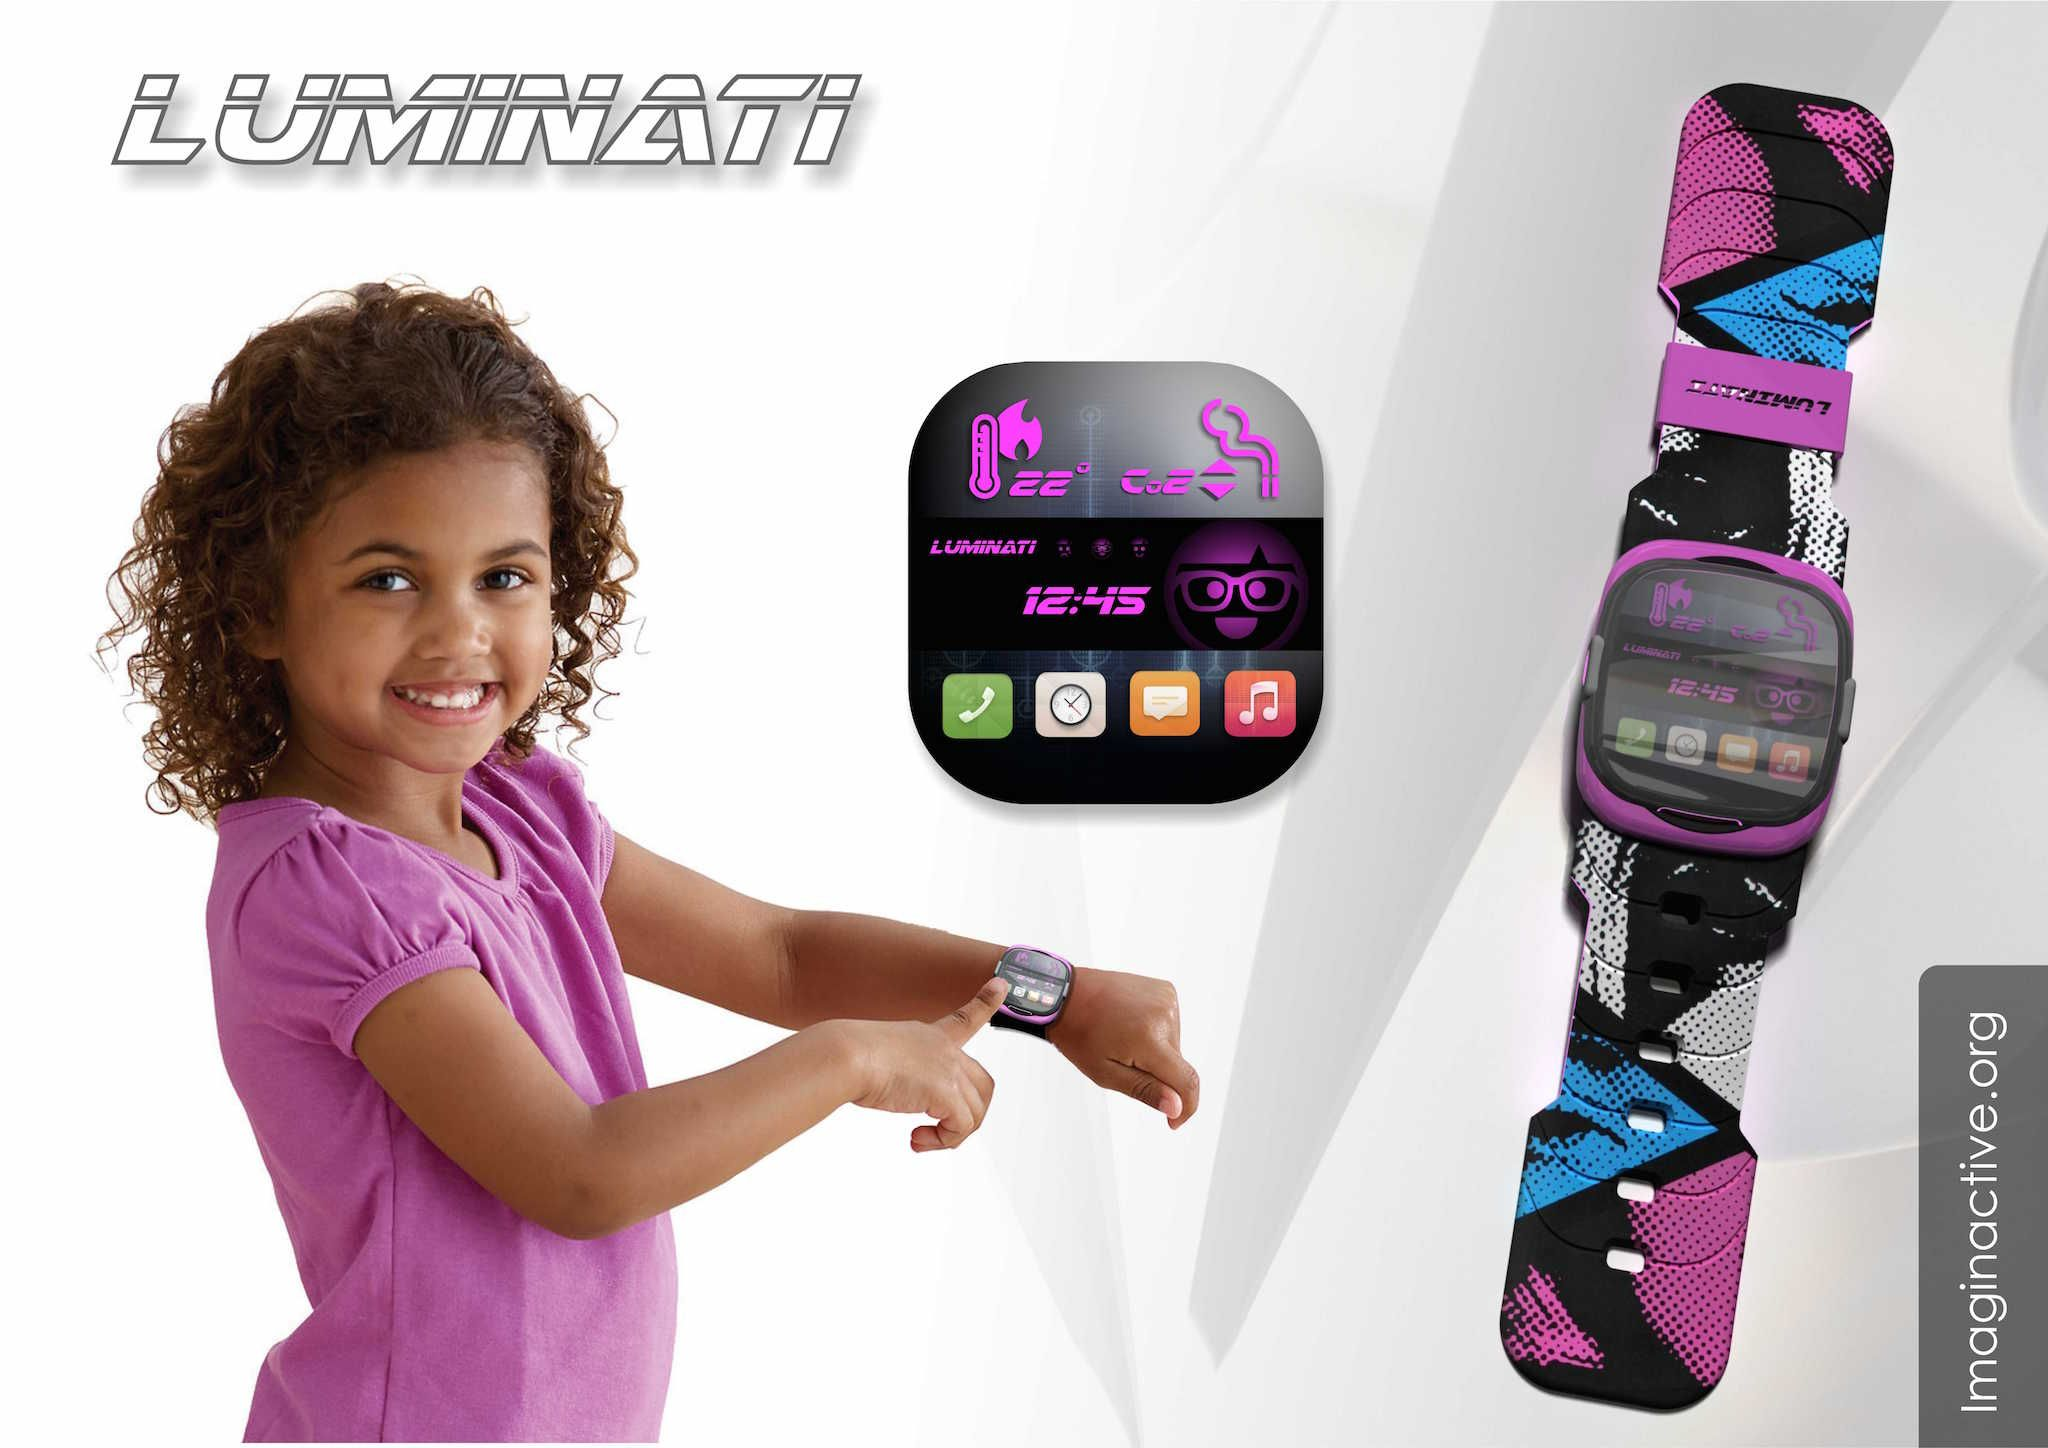 The Luminati is a smart watch designed to keep an eye on your young children at all times around the house. It functions as a sort of a guardian angel wearable device that can be used a help you make parenting decisions based on real-time facts.